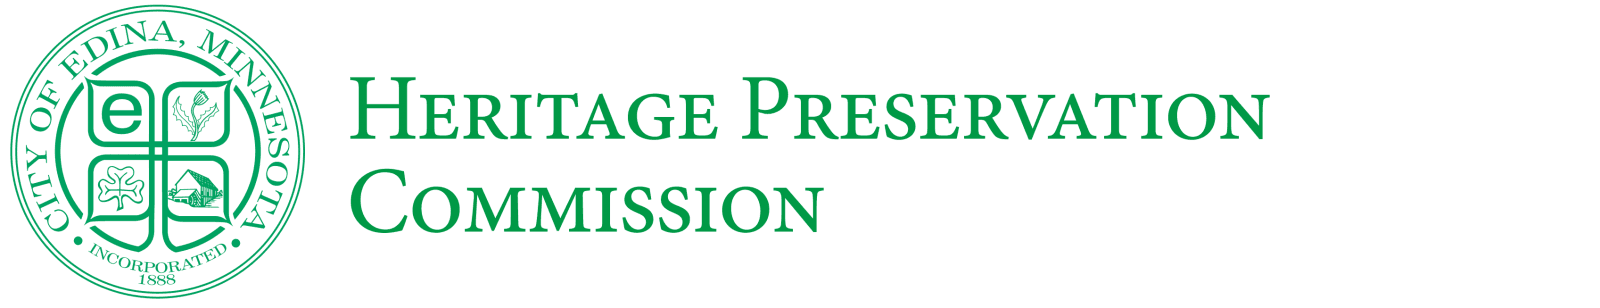 Heritage Preservation Commission